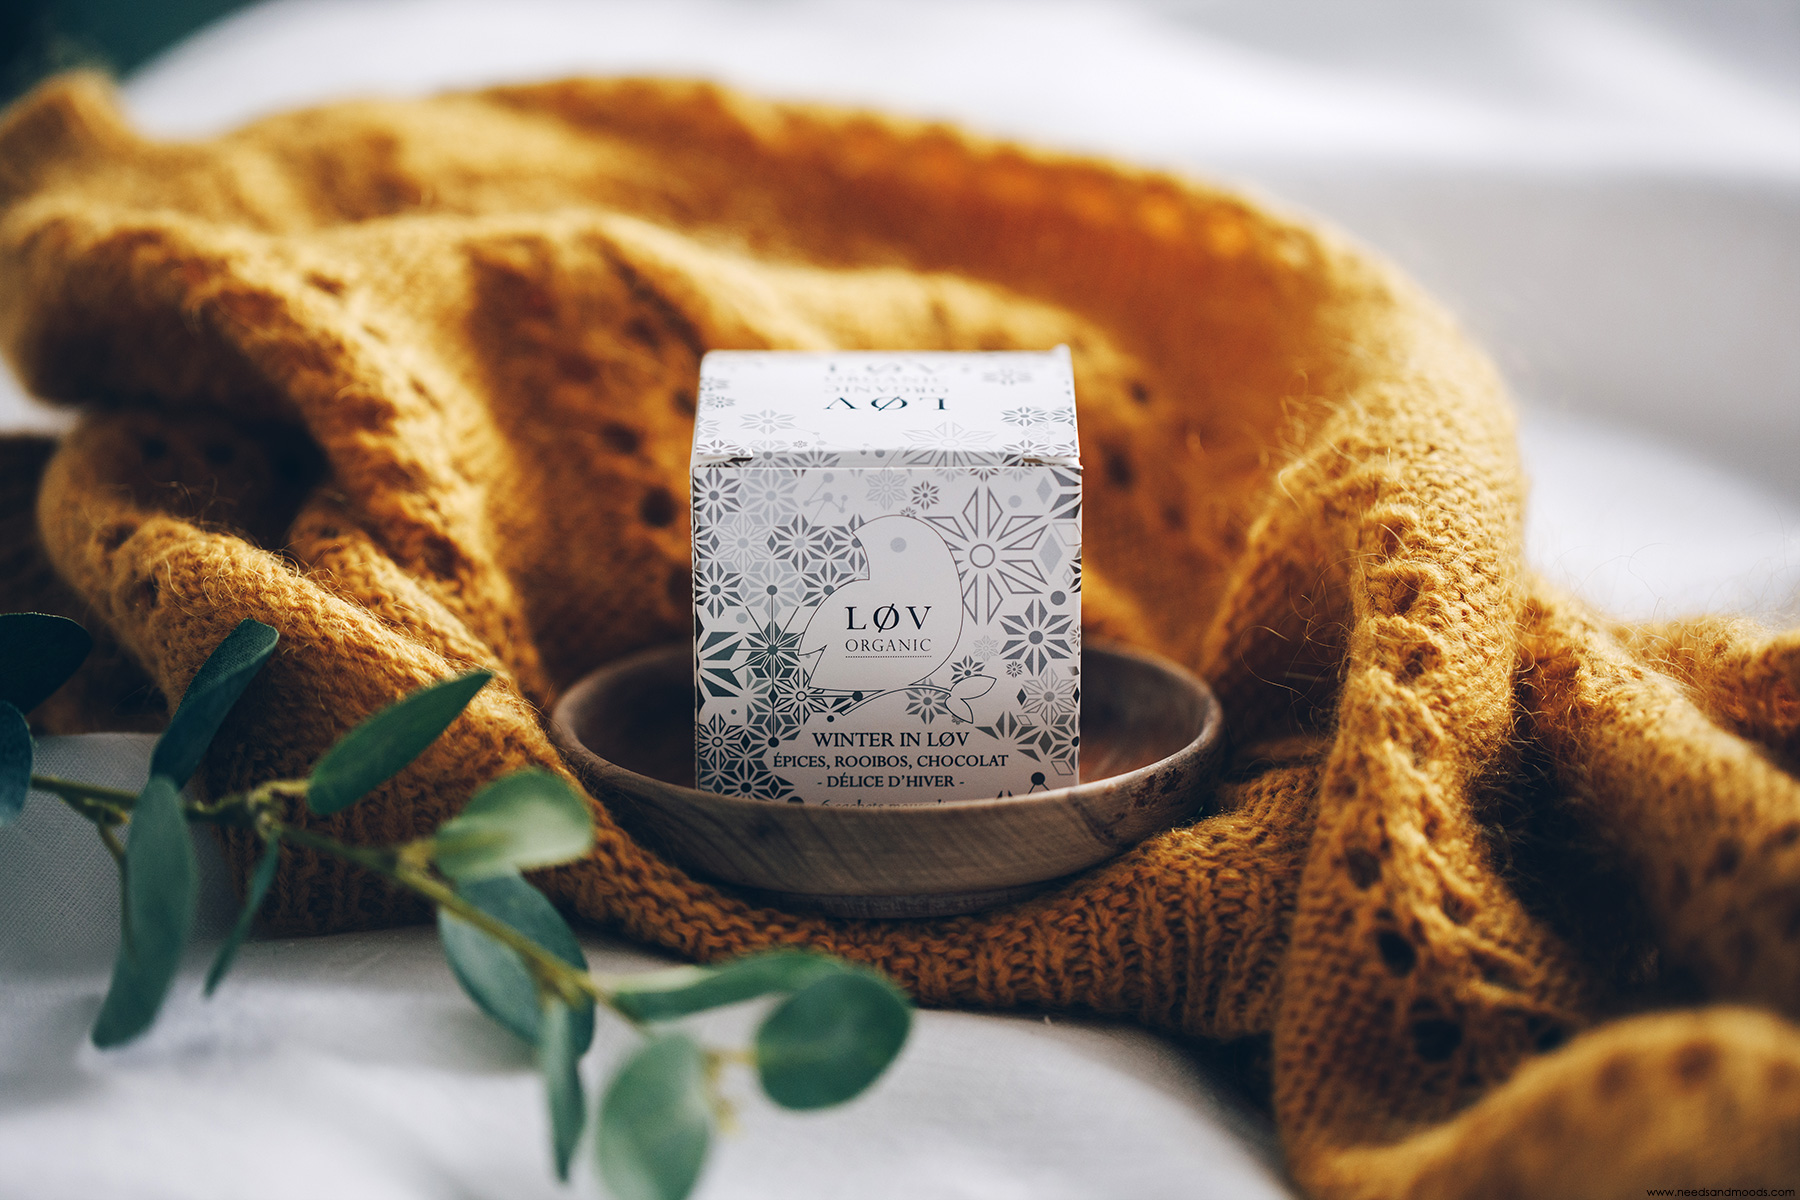 nuxe box beaute lov organic winter in lov